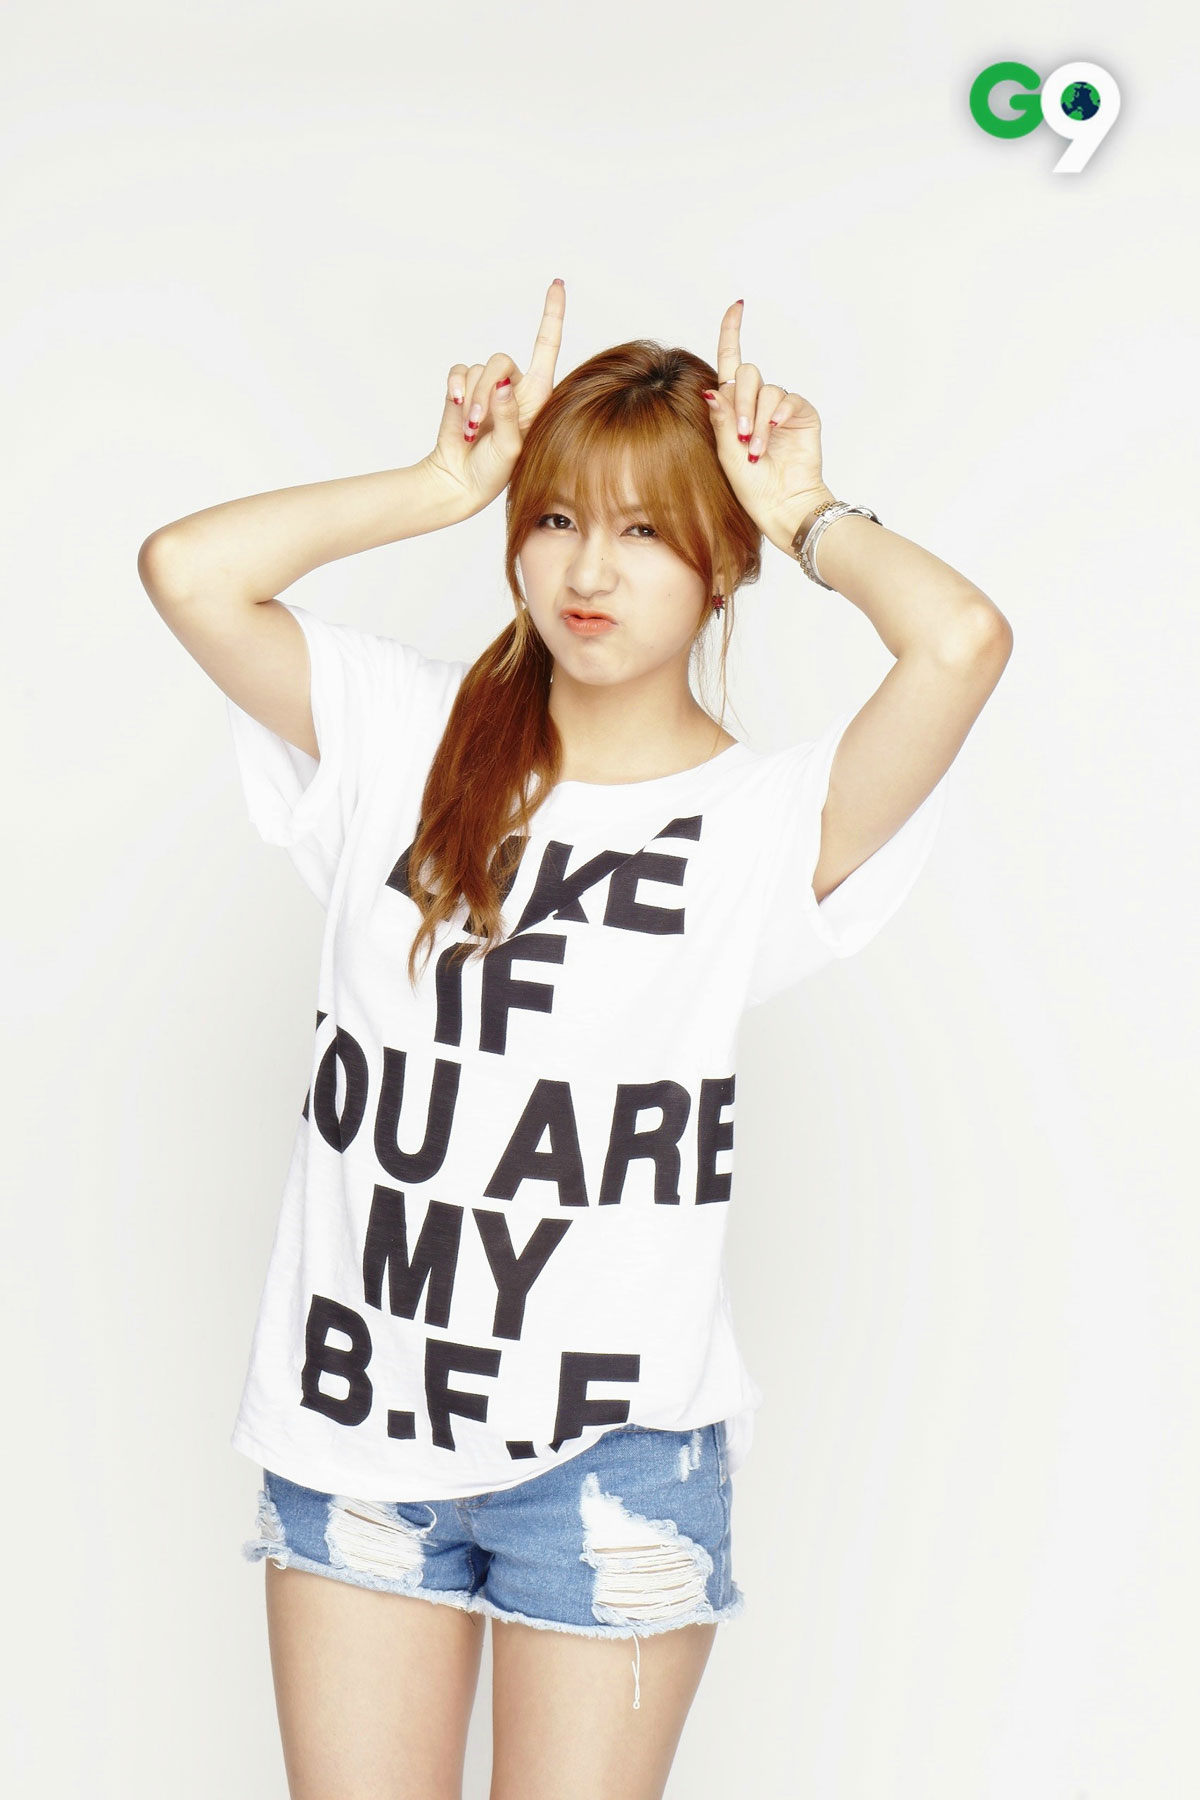 Apink Hayoung G9 advertisement